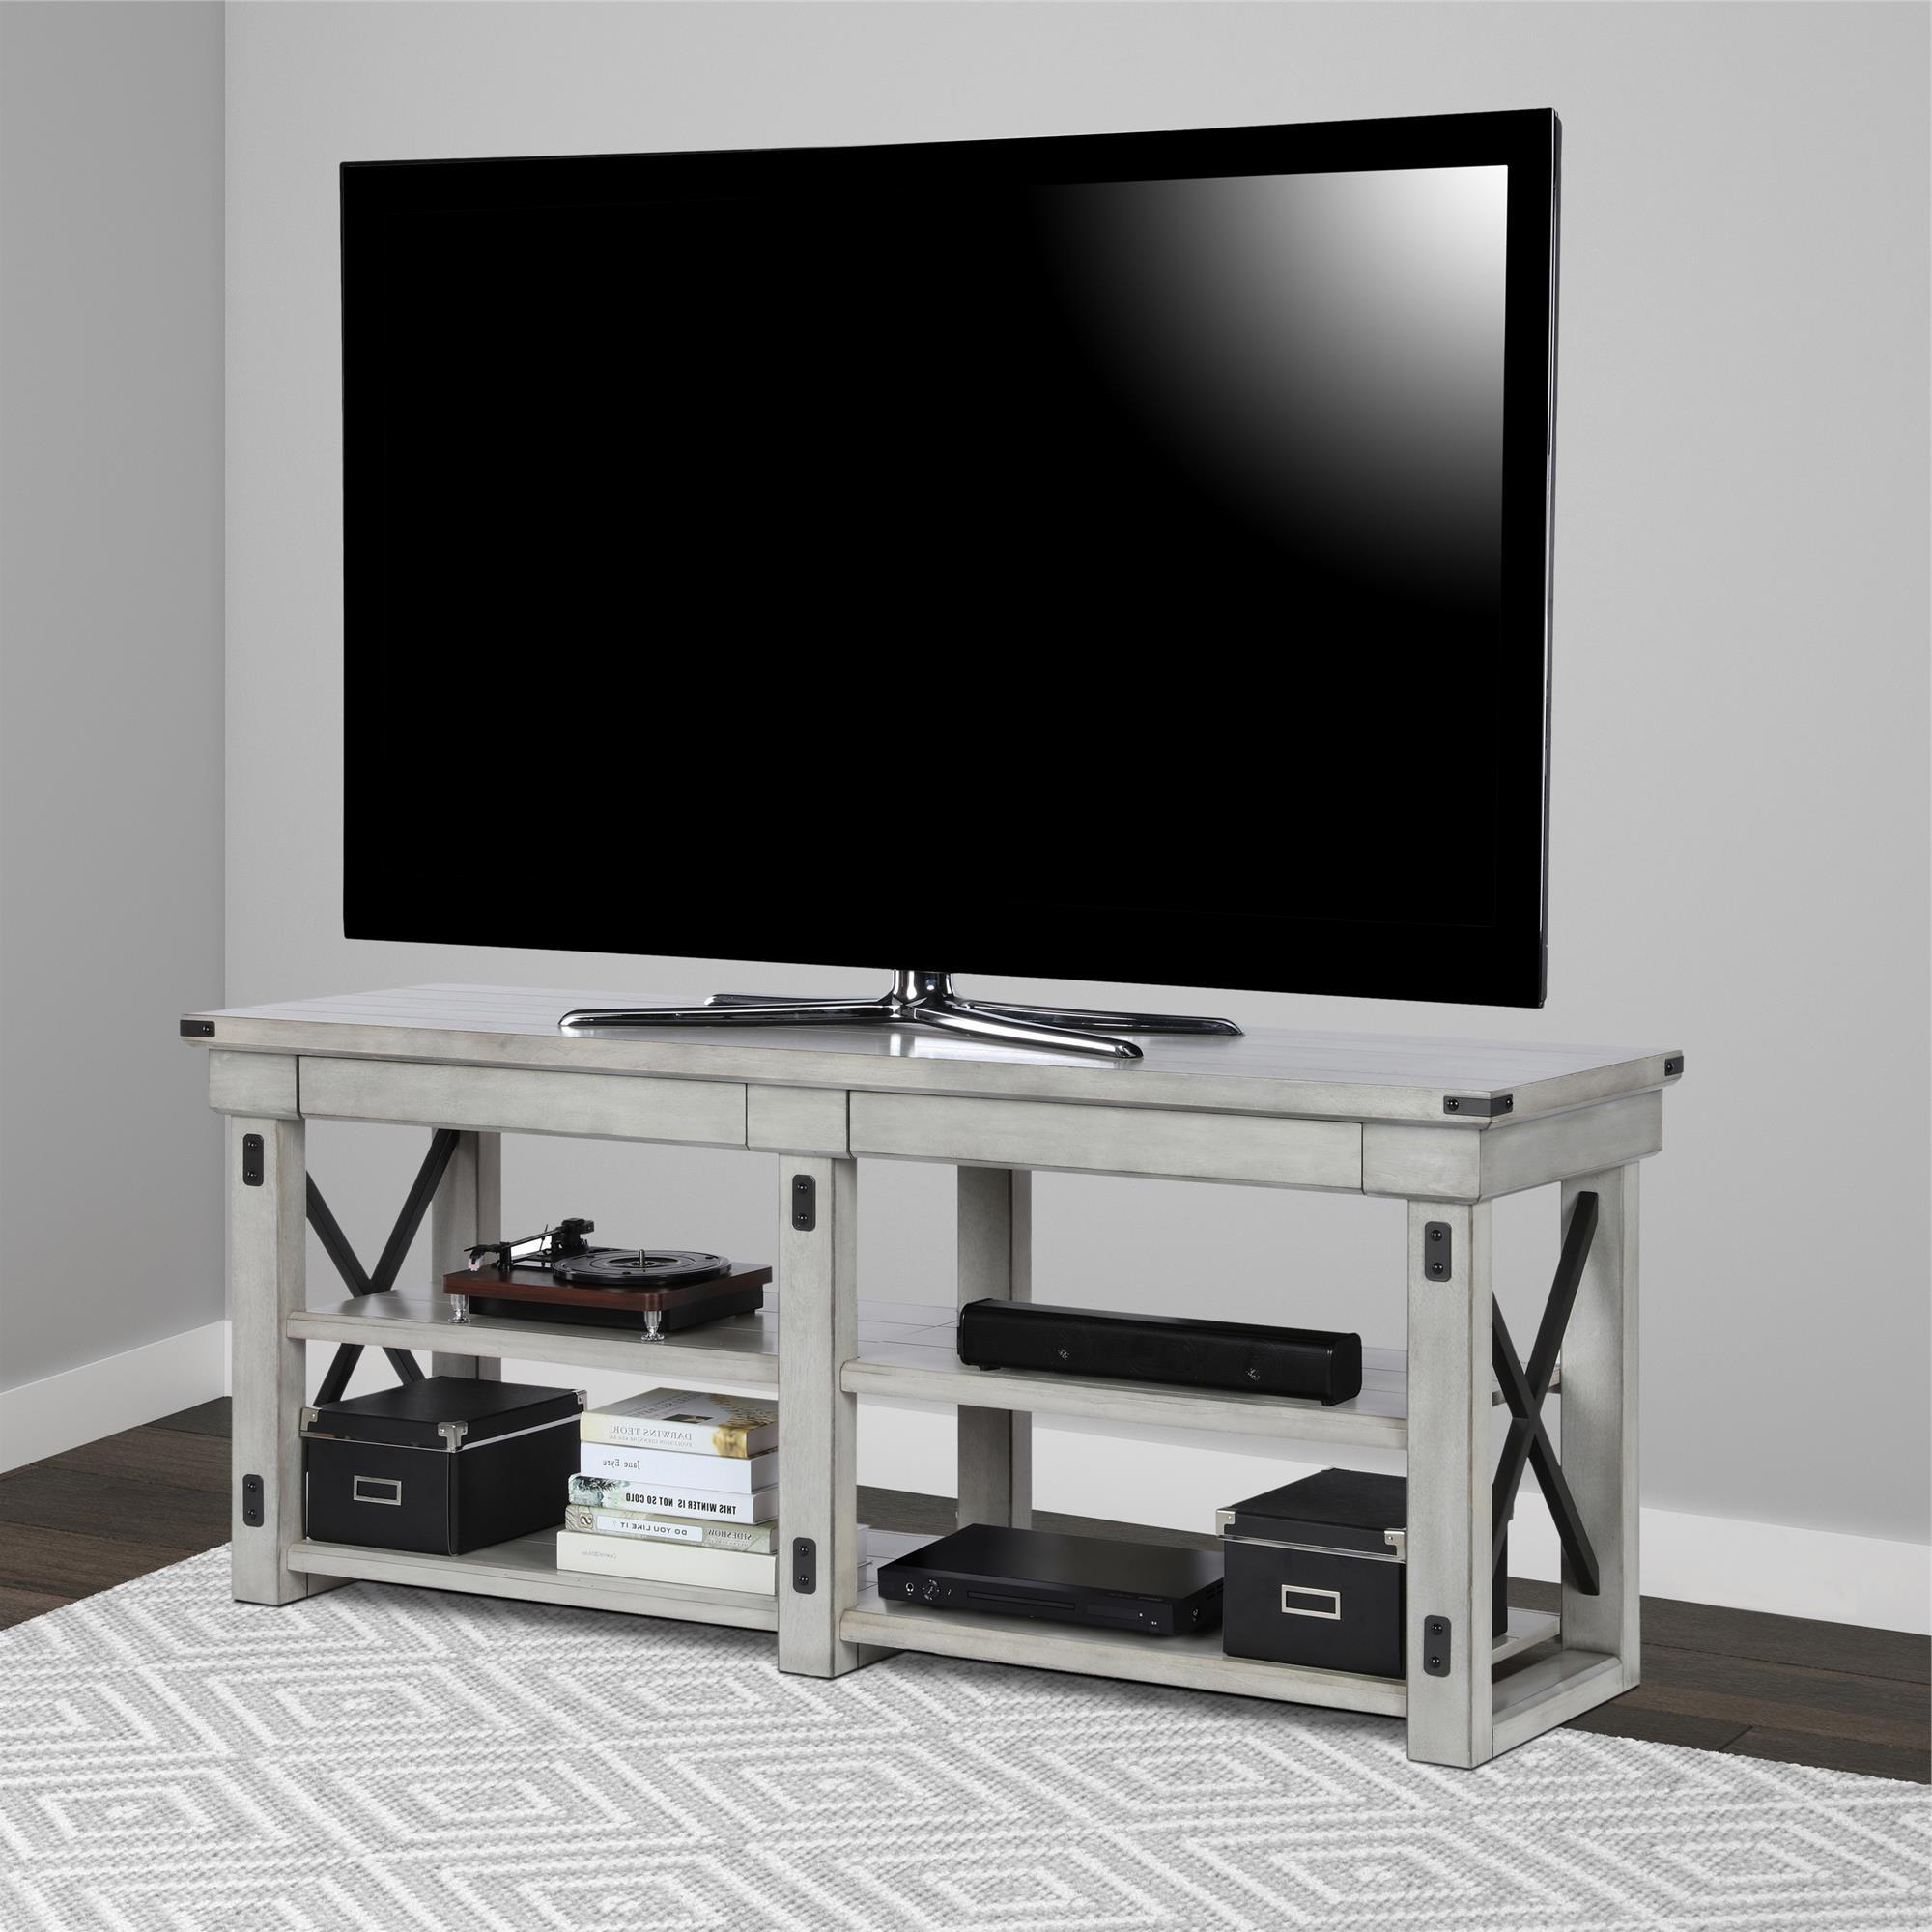 Newest 100 Cm Wide White Tv Stand 36 Inch 80Cm Extra – Buyouapp Throughout 100Cm Tv Stands (Gallery 14 of 20)